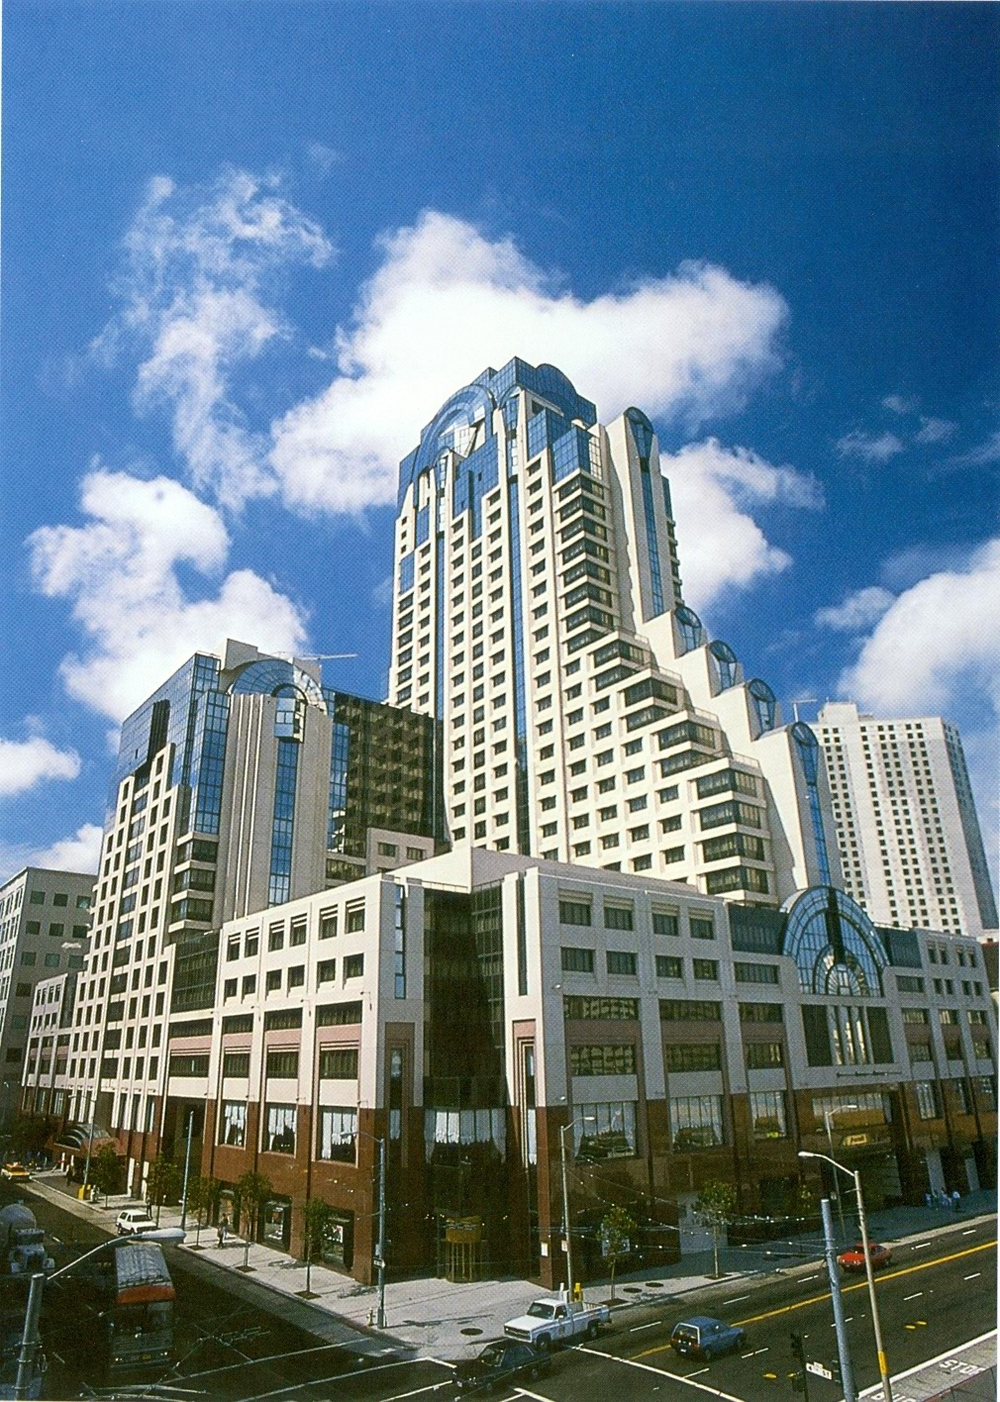 Marriot Hotel & Convention Center San Francisco.JPG